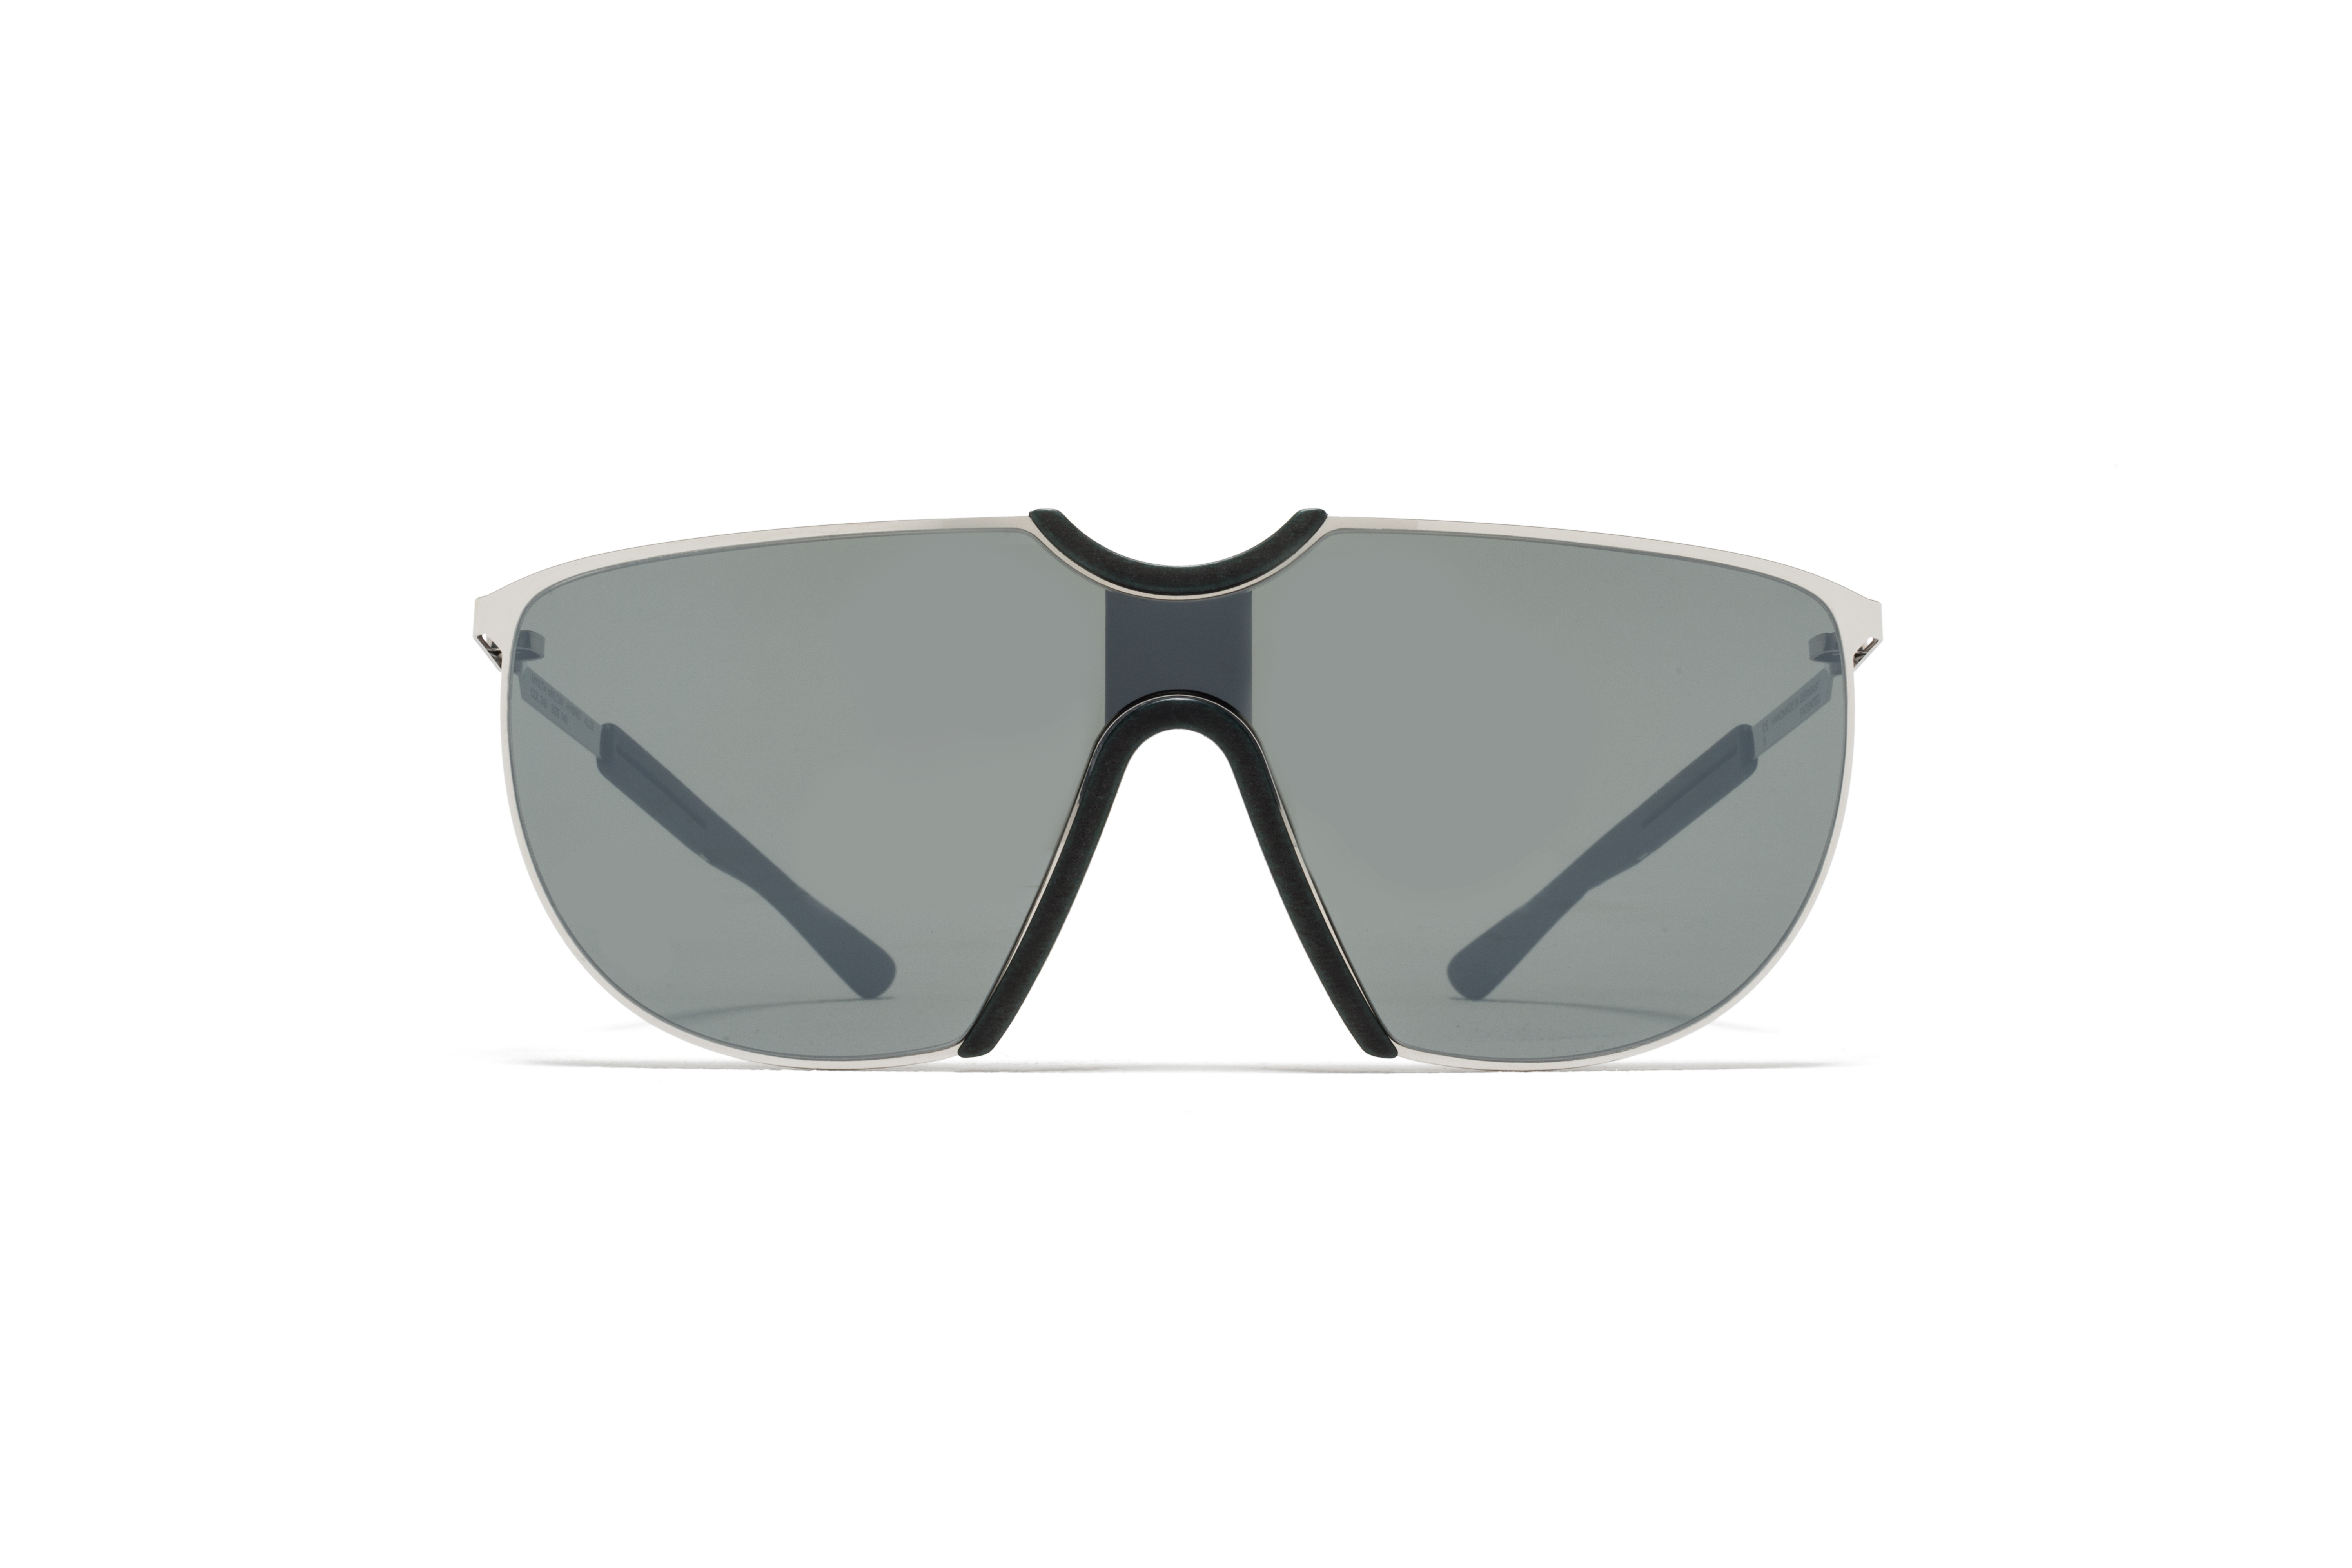 3393c194ac MYKITA - UNFORTUNATELY THIS PRODUCT IS NO LONGER AVAILABLE